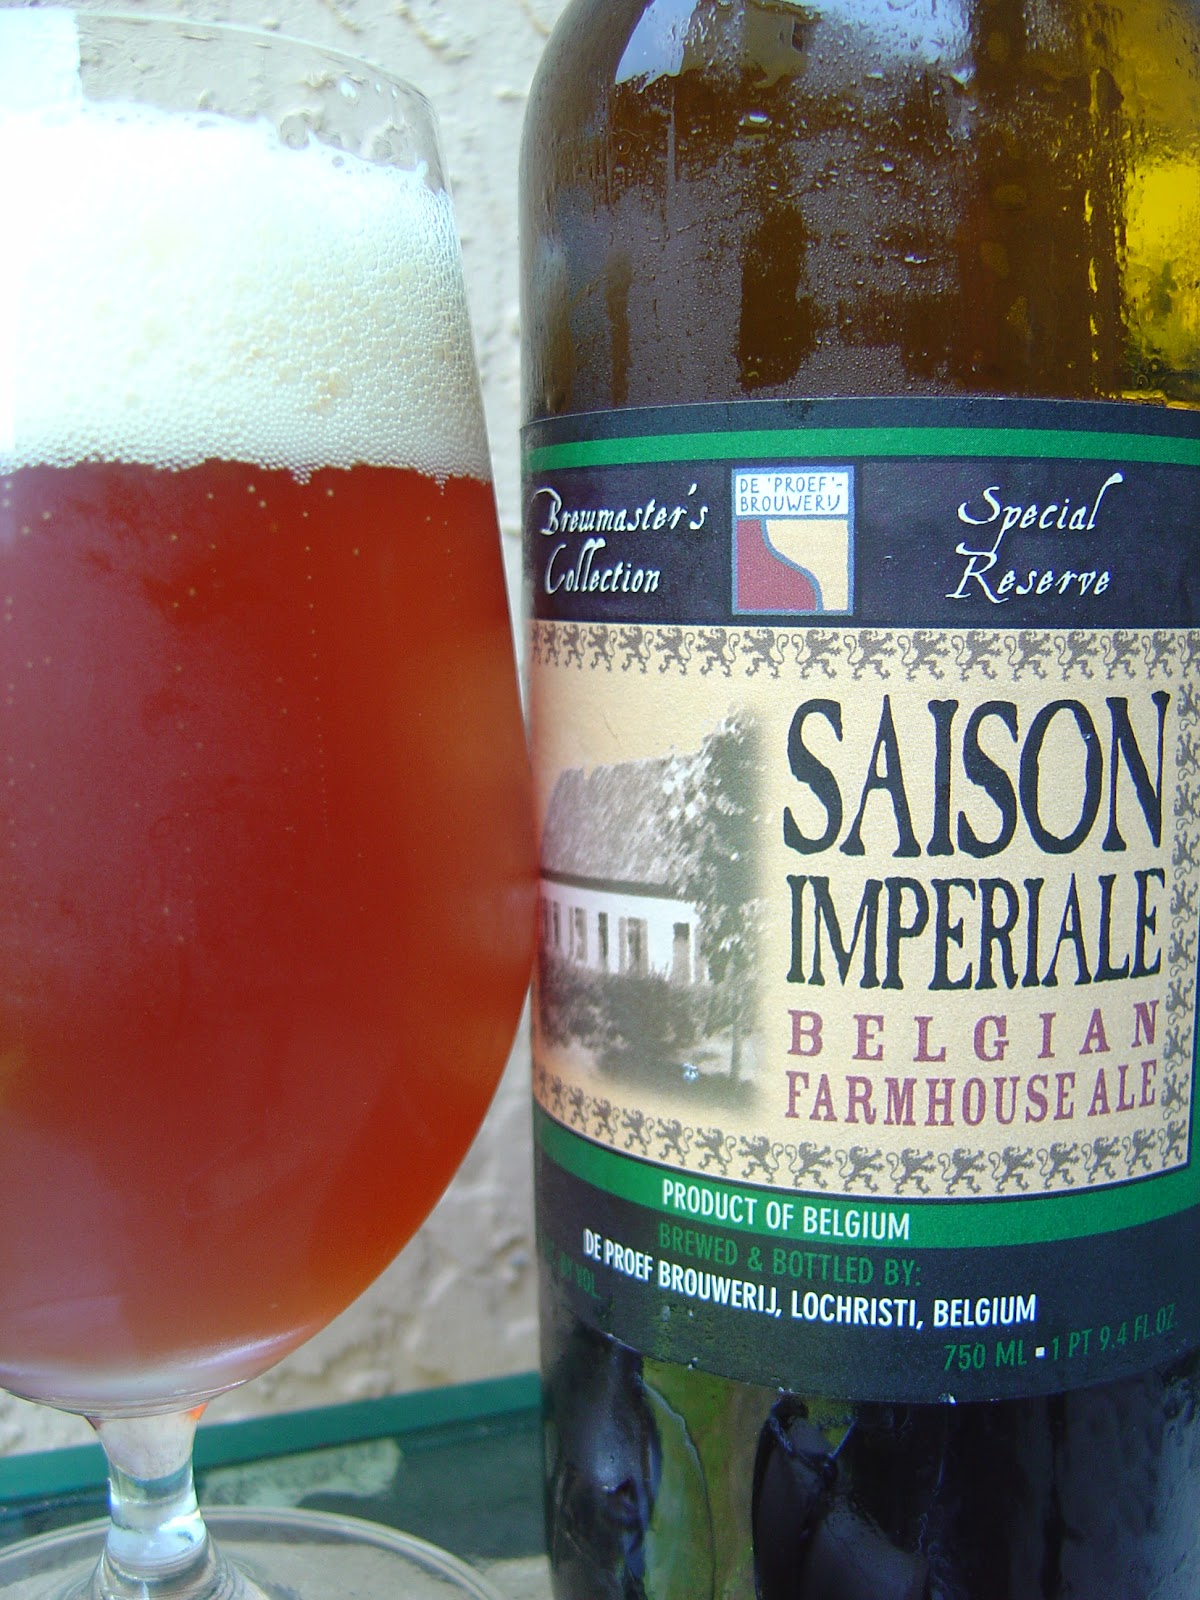 Saison Belgian Farmhouse Ale Daily Beer Review Saison Imperiale Belgian Farmhouse Ale